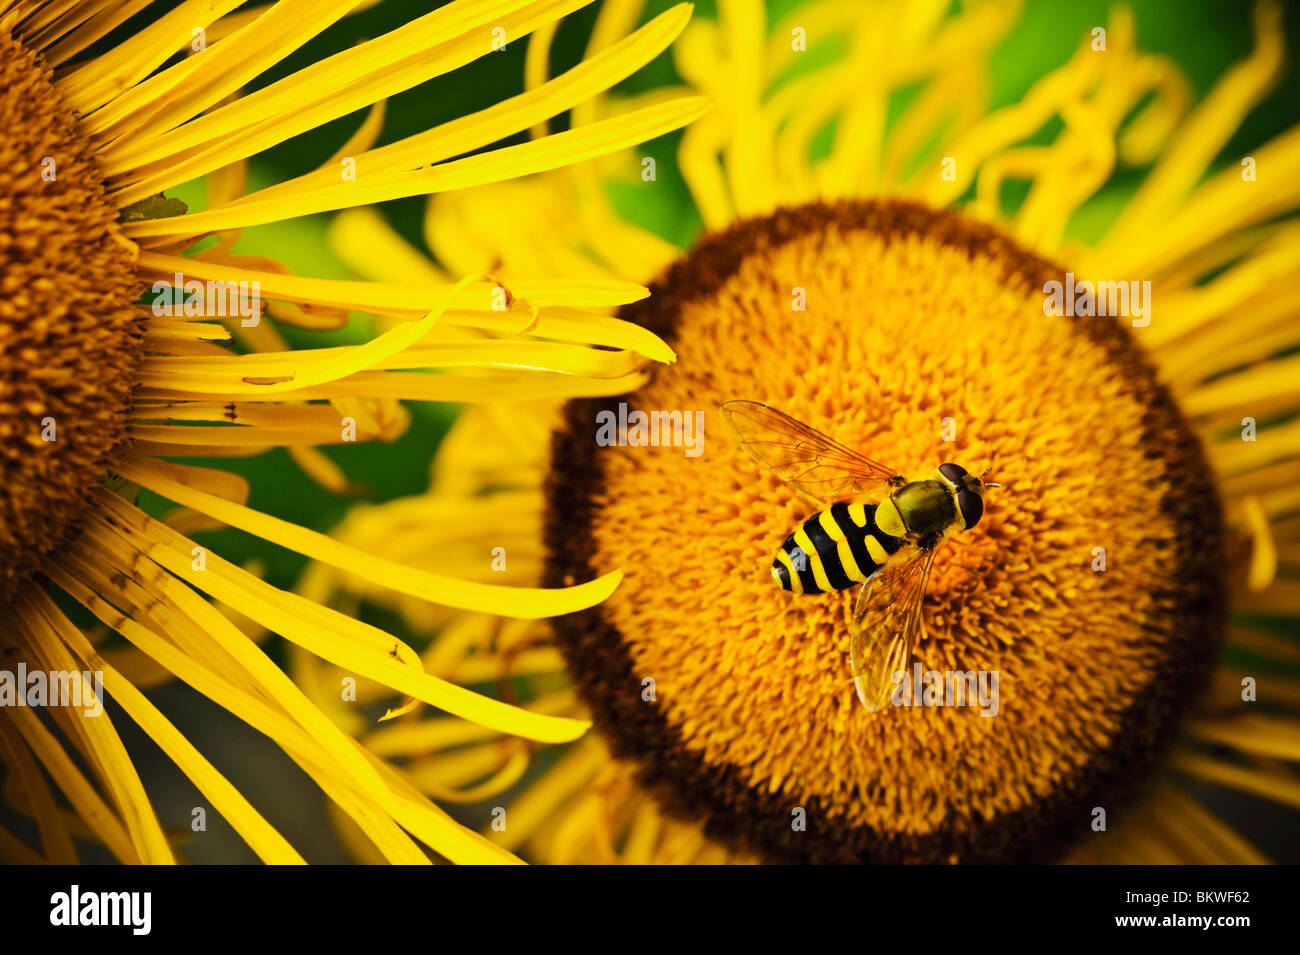 Closeup on flower and fly - Stock Image